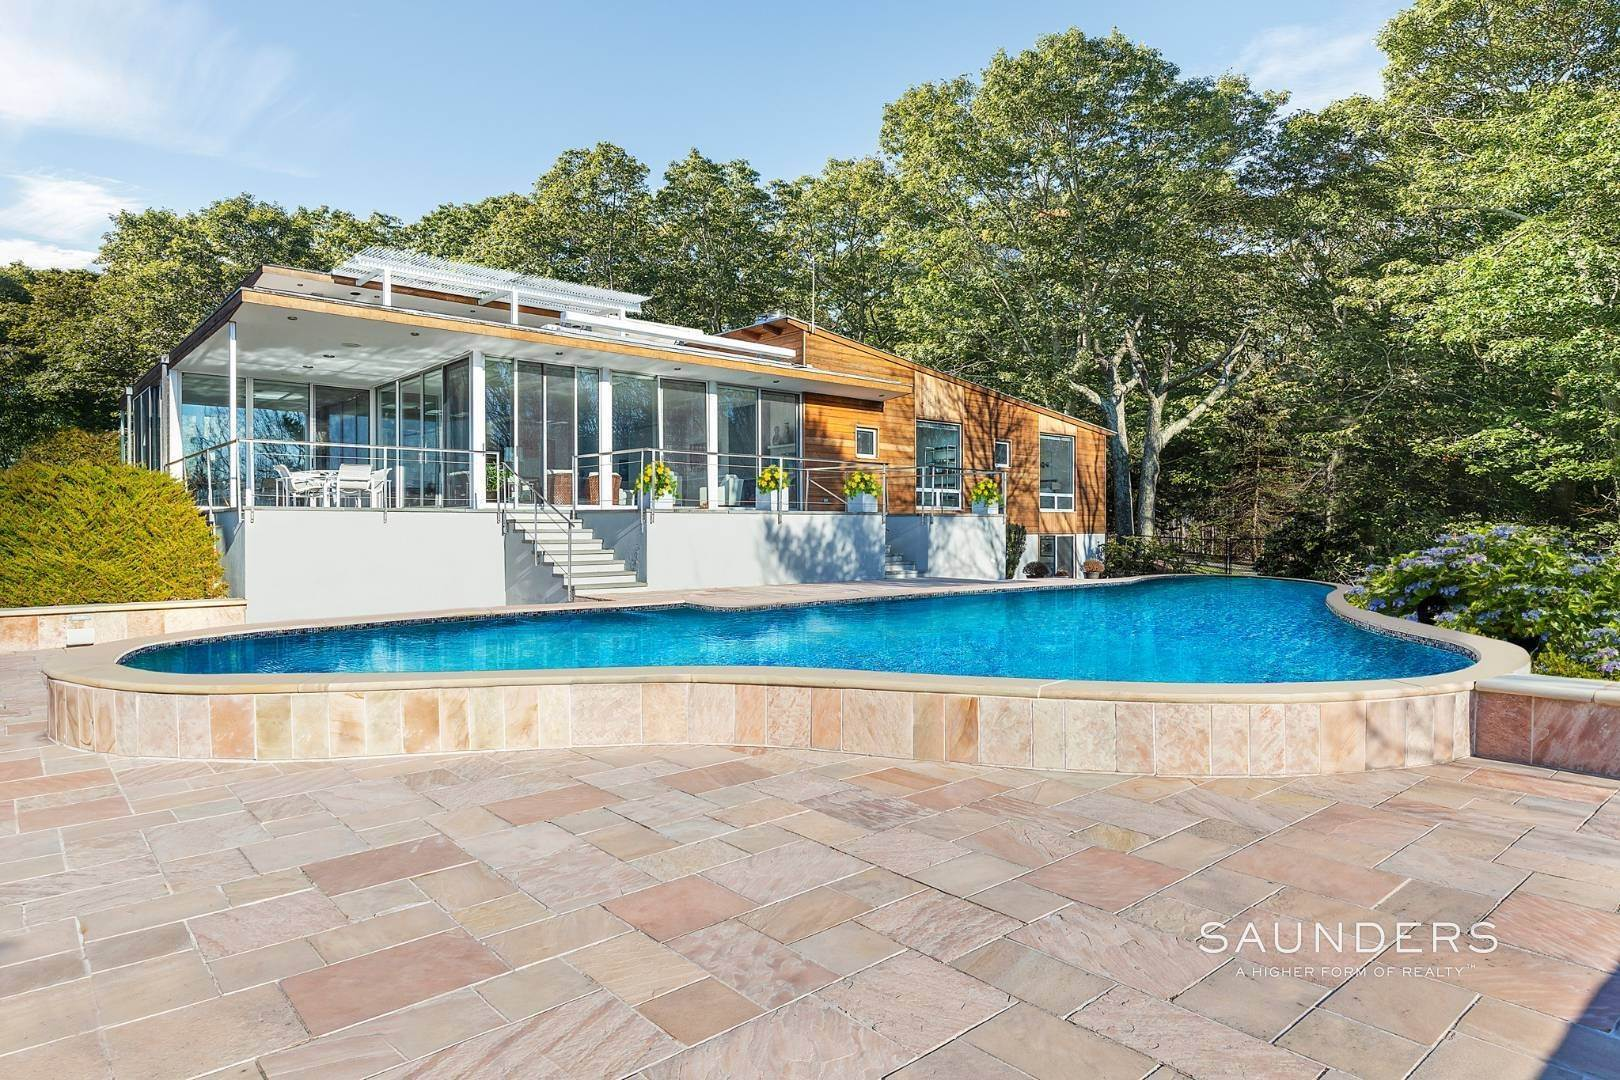 6. Single Family Homes for Sale at Shelter Island Classic Modern 42 Prospect Avenue And 23 Serpentine Drive, Shelter Island Heights, Shelter Island, NY 11965